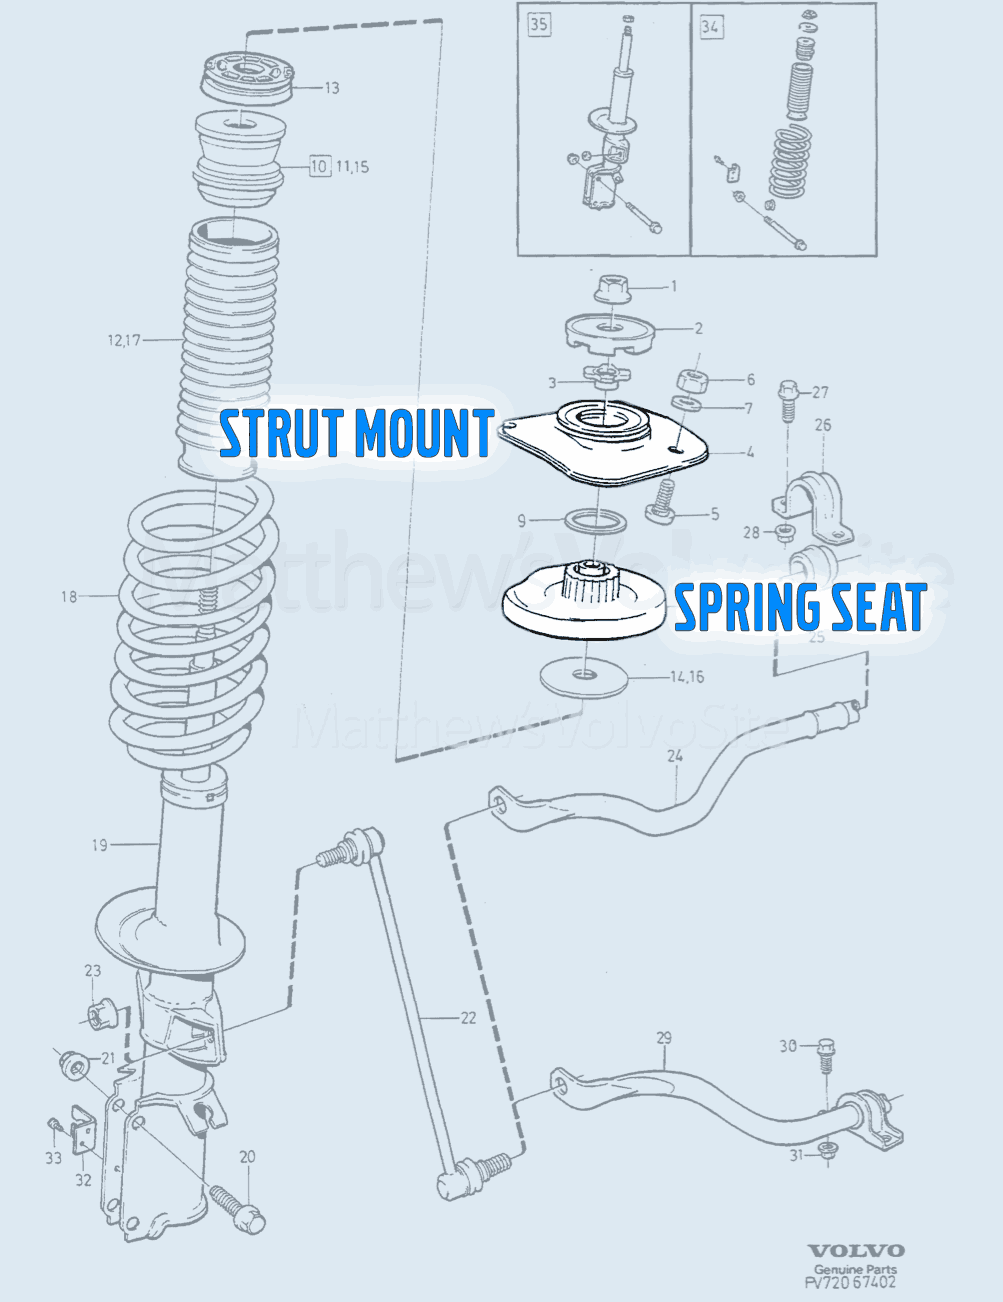 2006 Volvo Xc90 Seat Diagram Reveolution Of Wiring Wire Spring Or Strut Mount Rh Matthewsvolvosite Com 2004 Engine